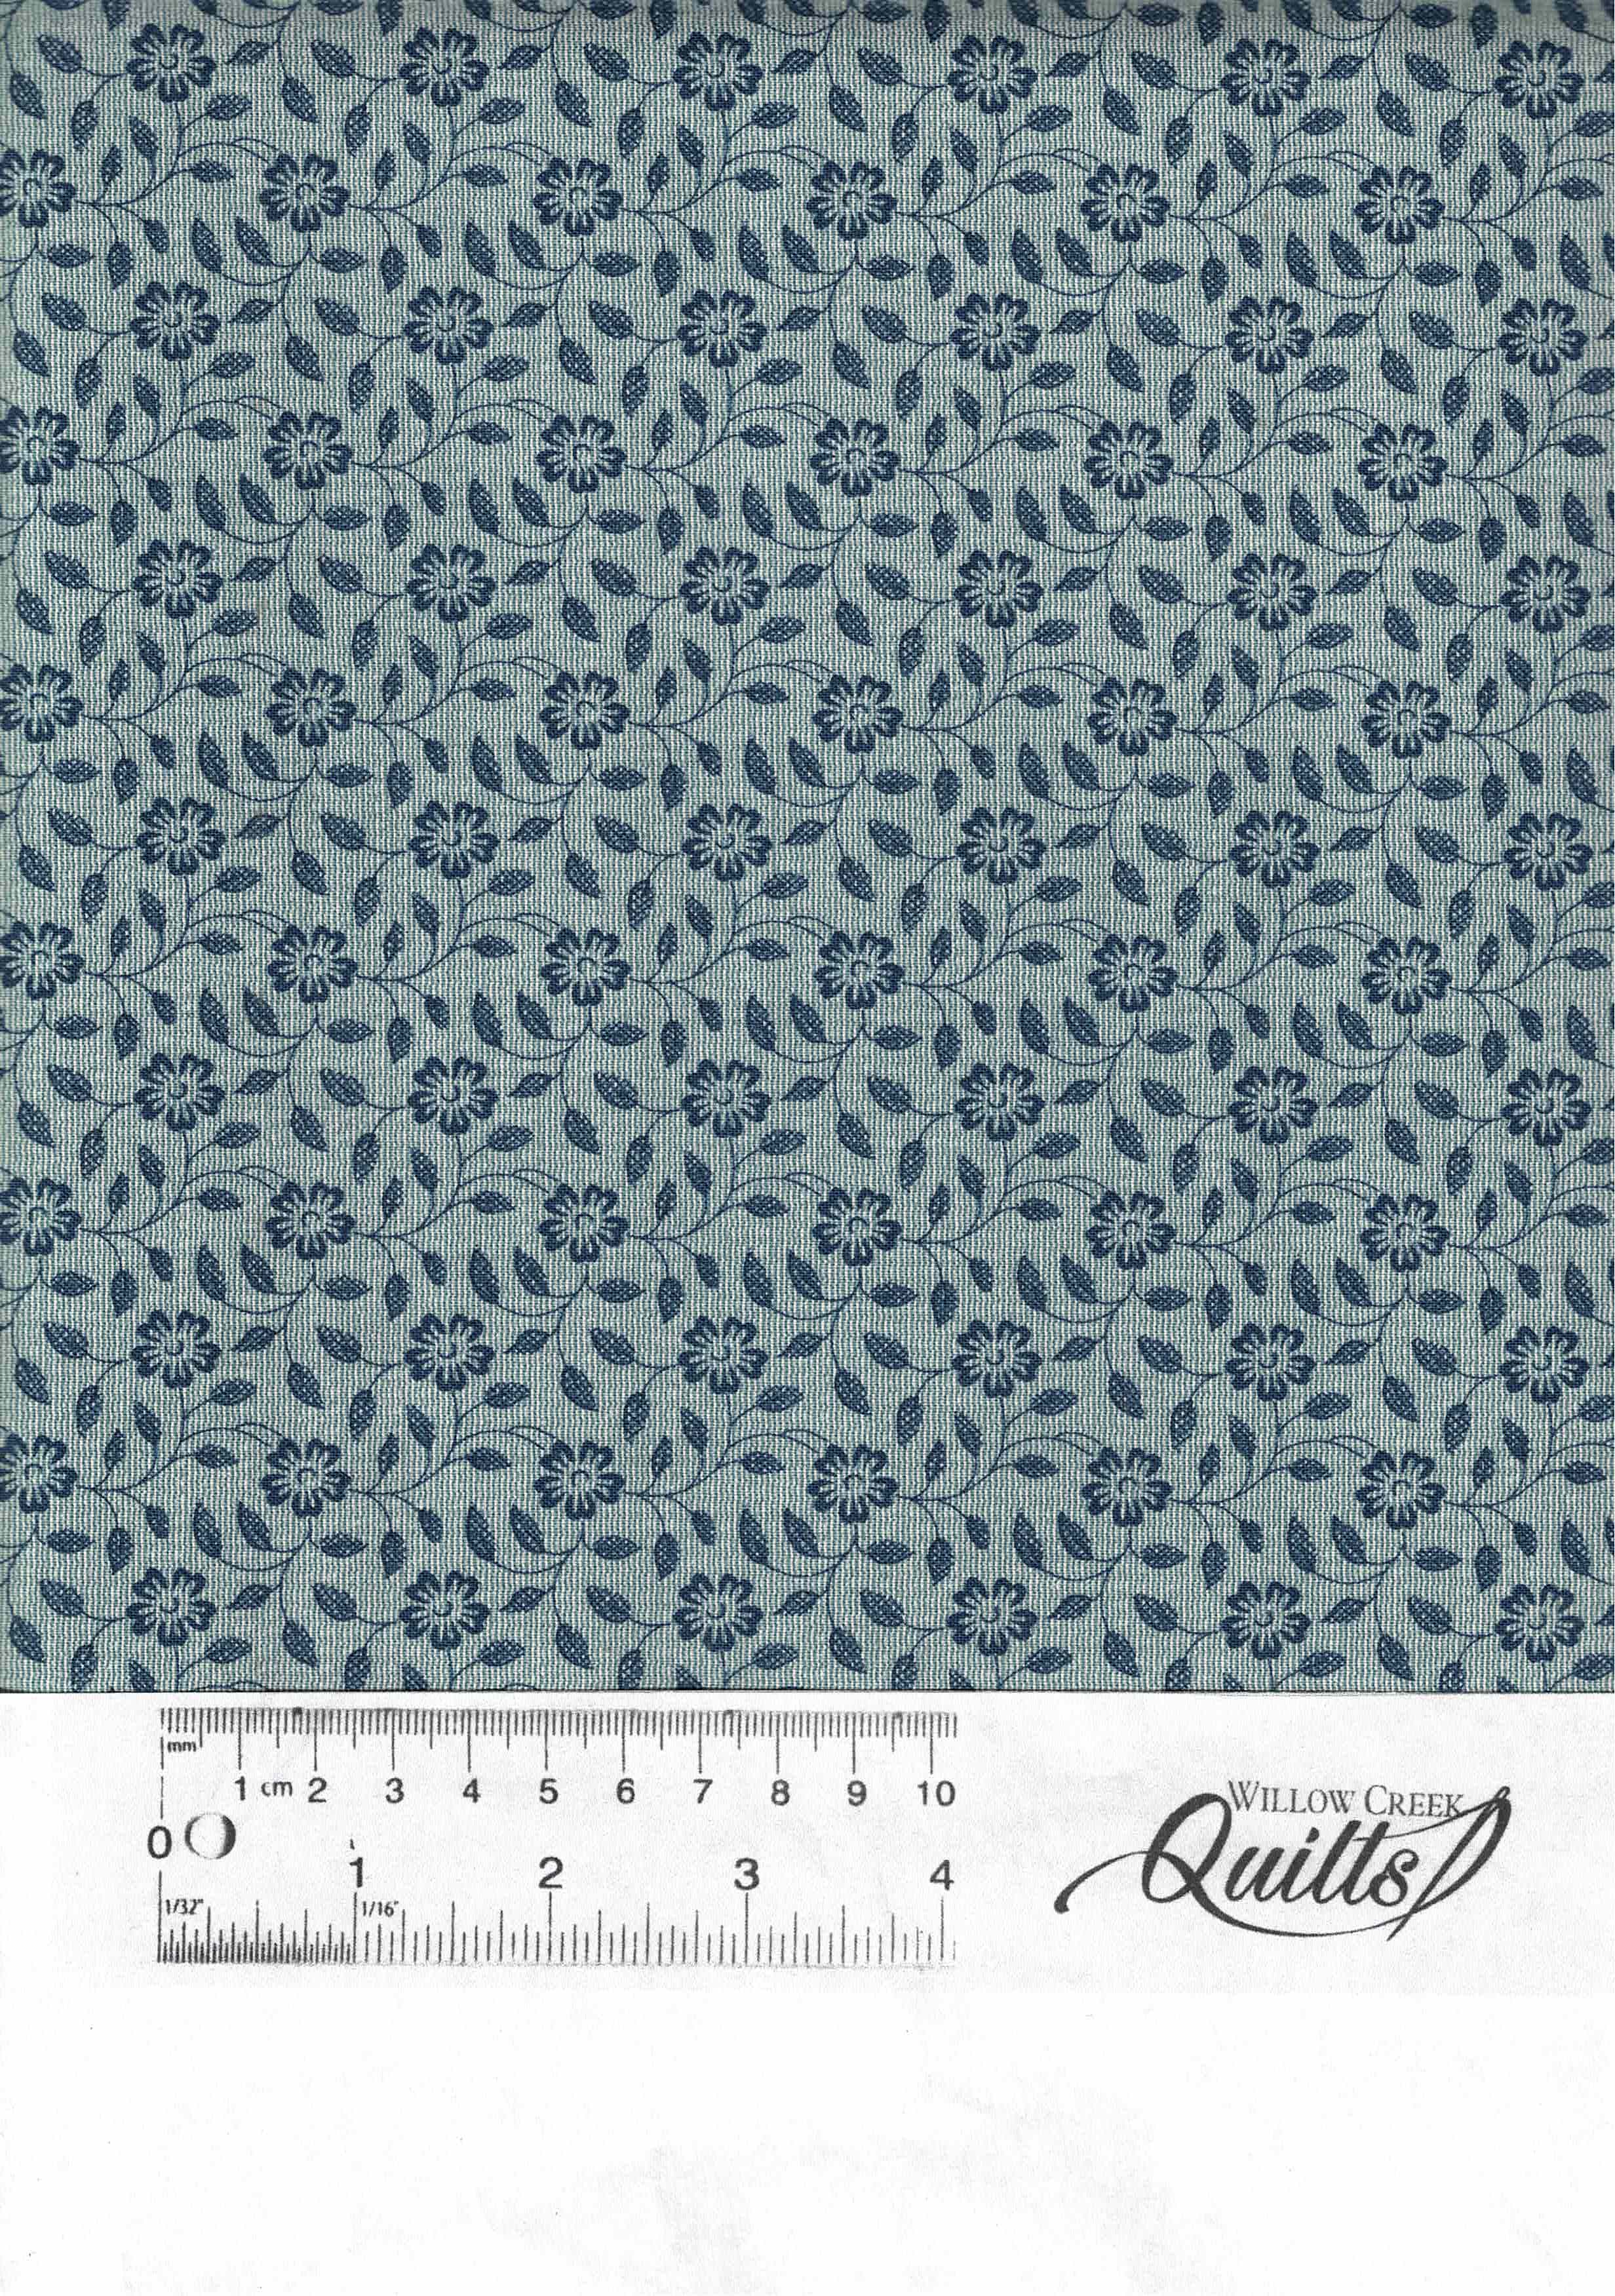 Something Blue by Laundry Basket - Vow - 8830 B